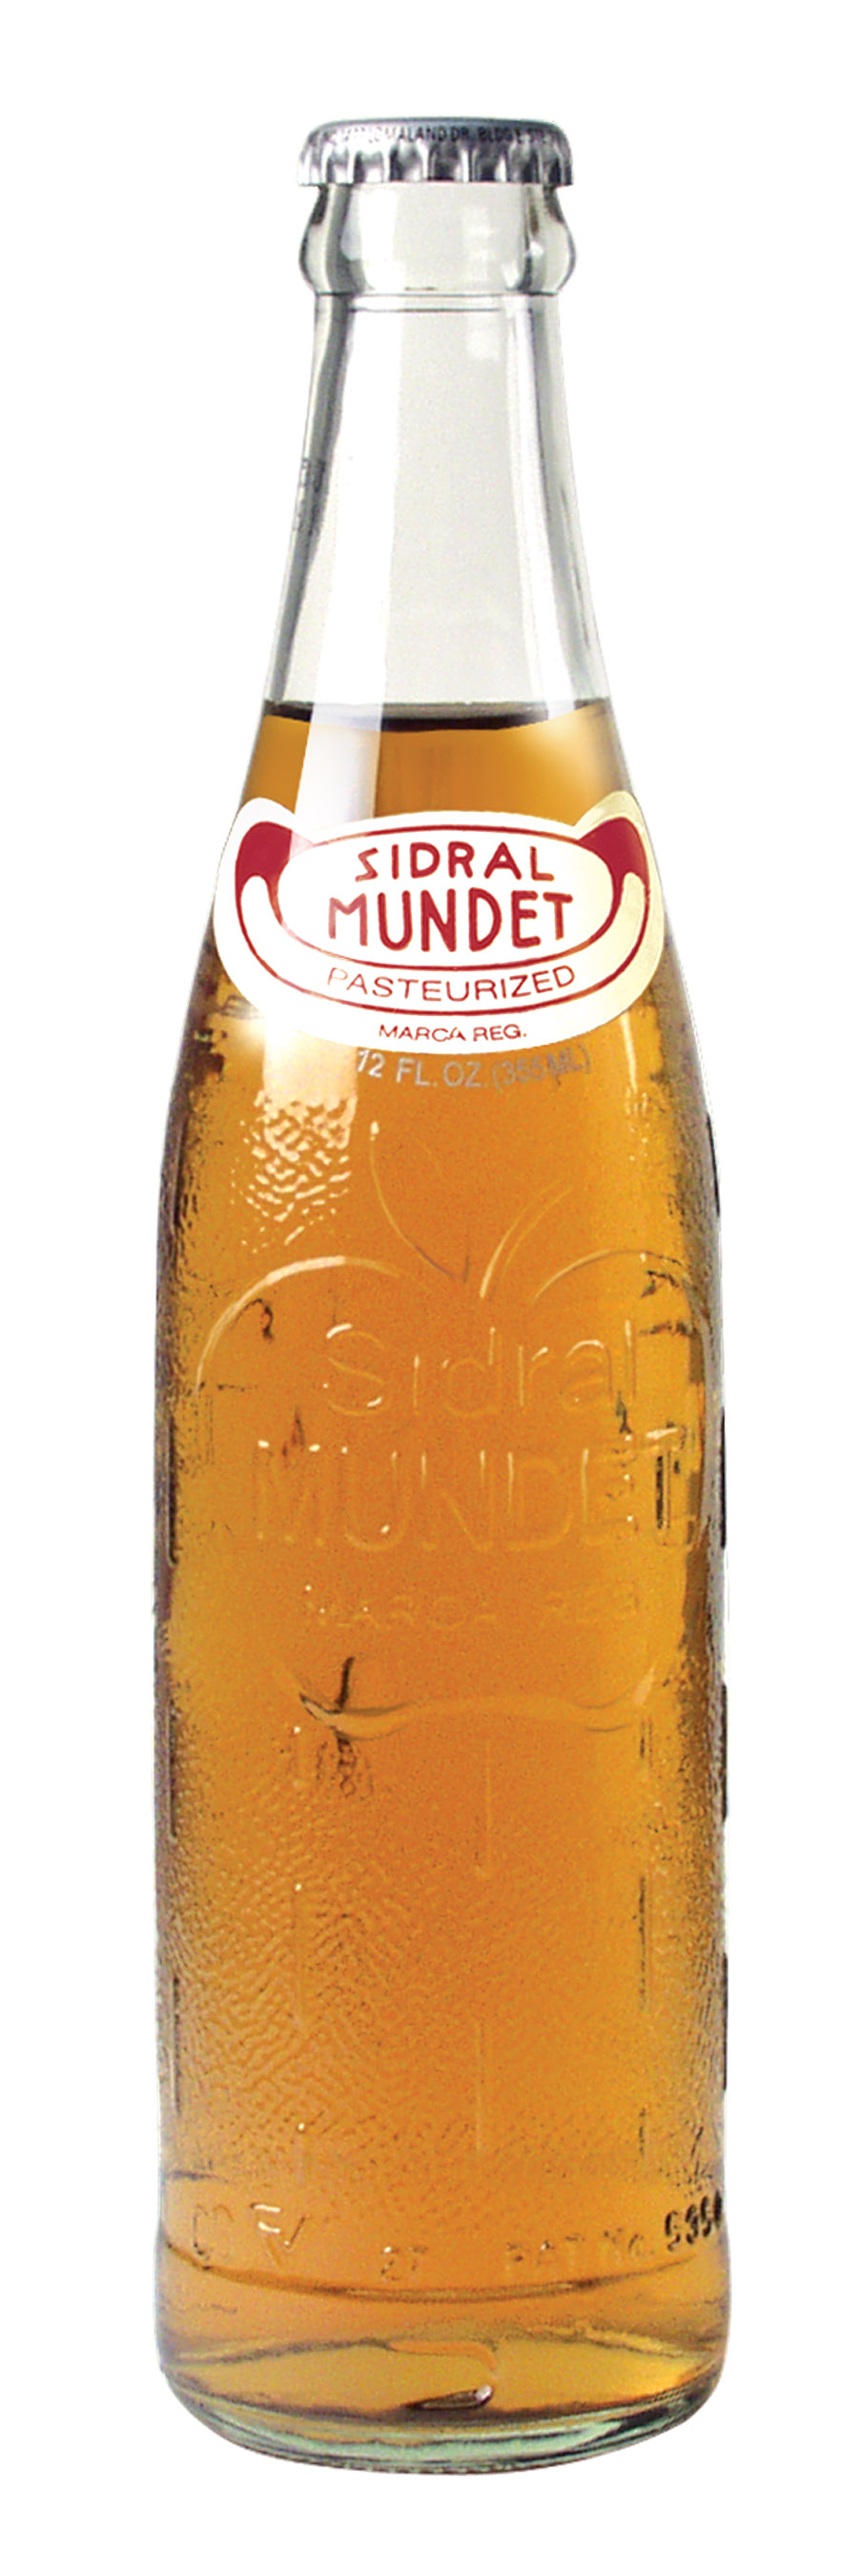 Mundet Apple Cider (Sidral) Soft Drink, 12 oz.